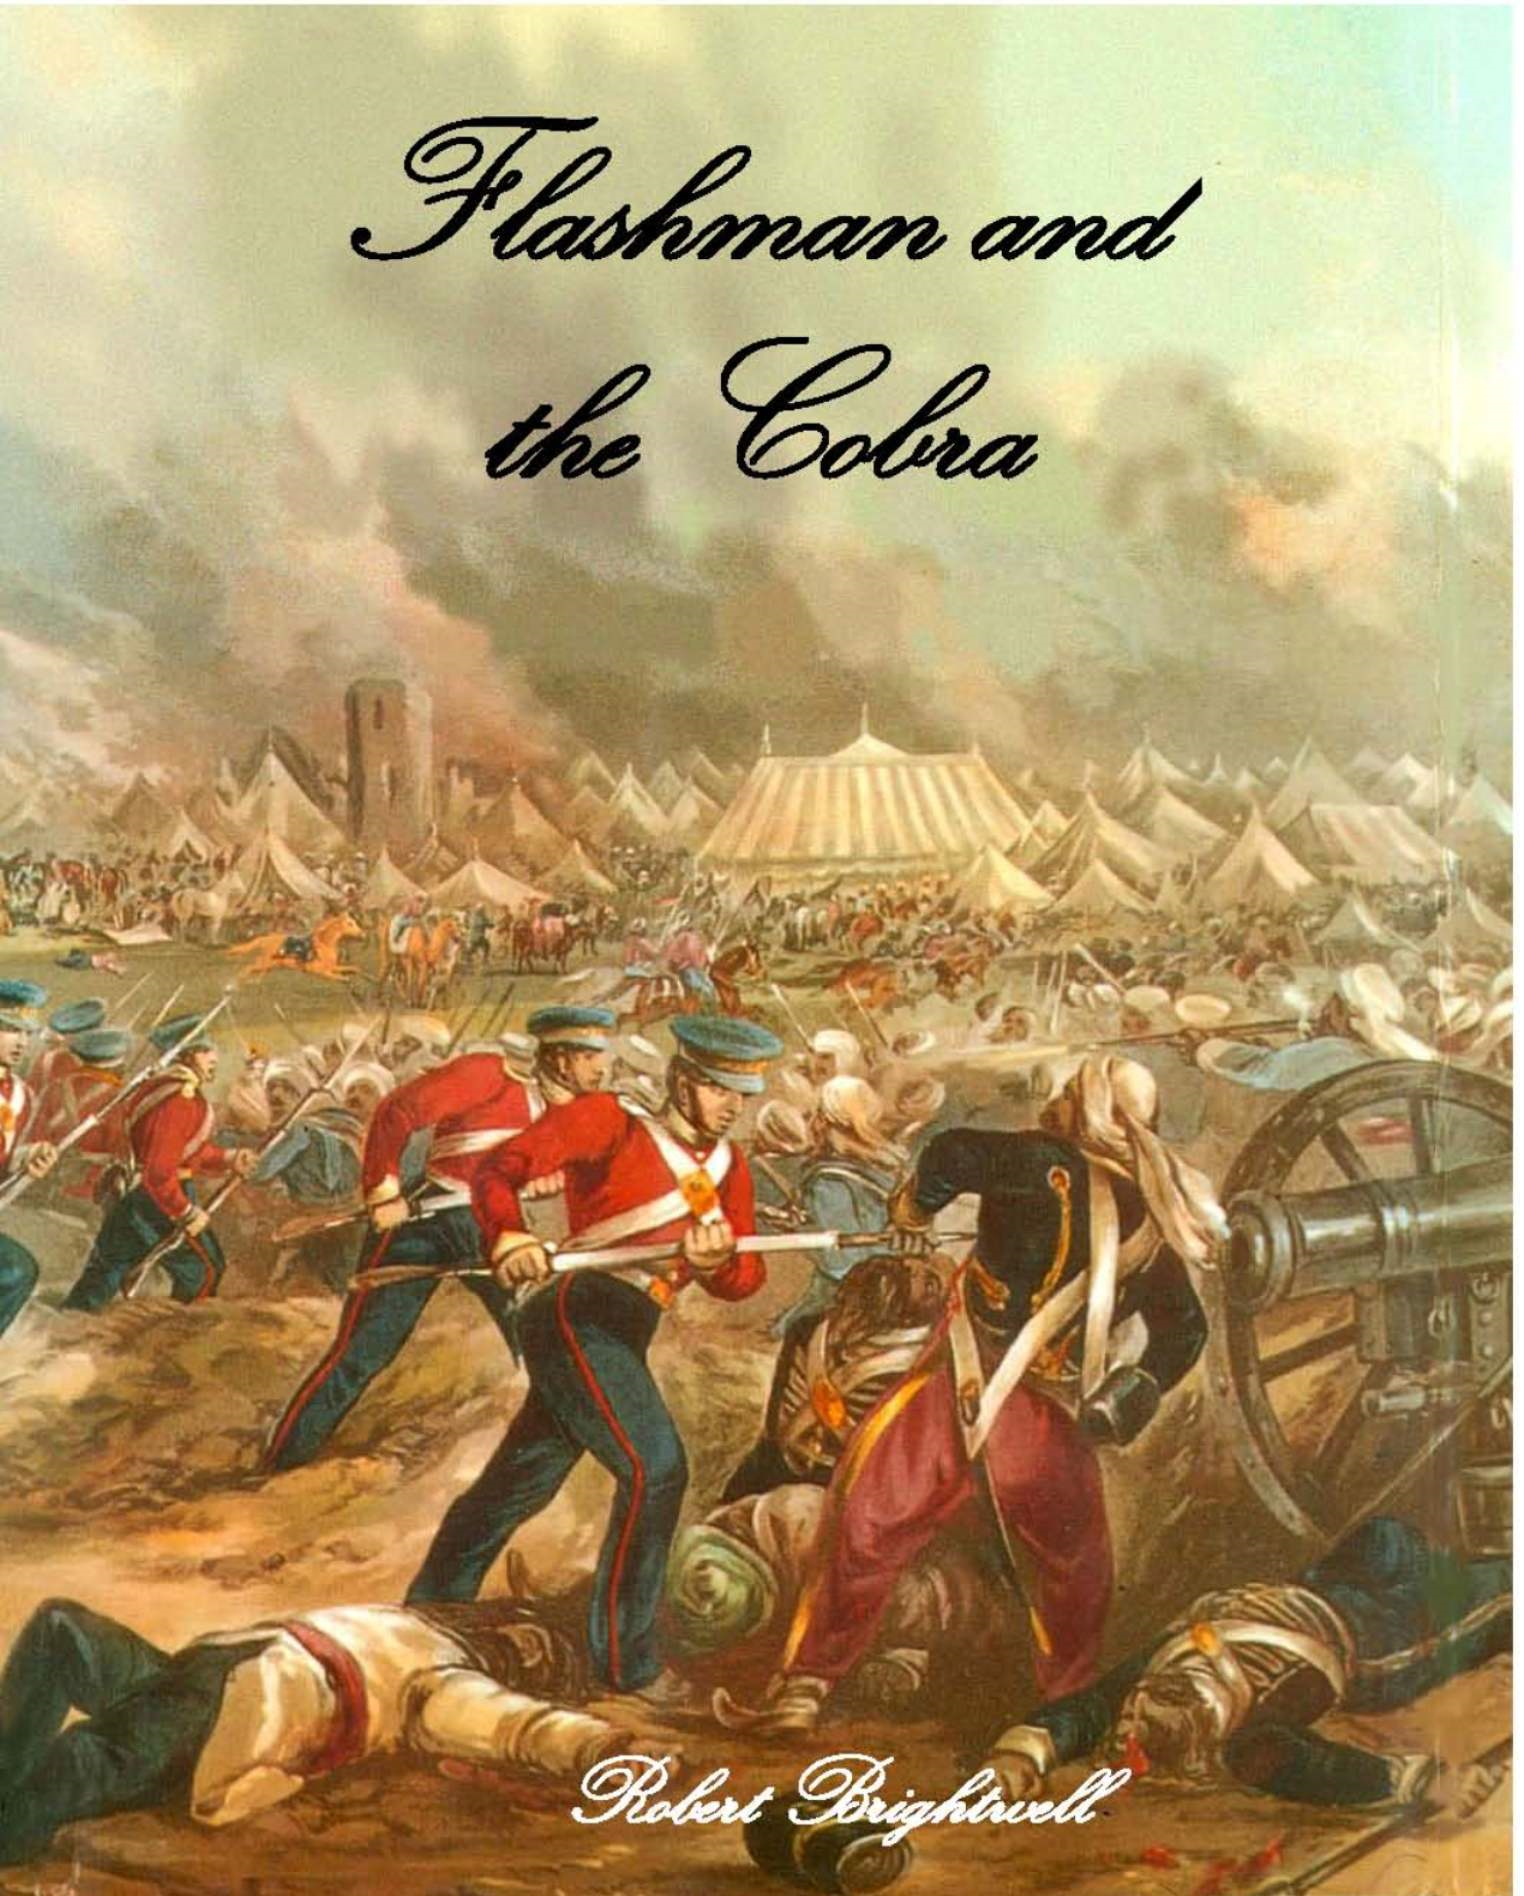 Flashman and the Cobra By: Robert Brightwell